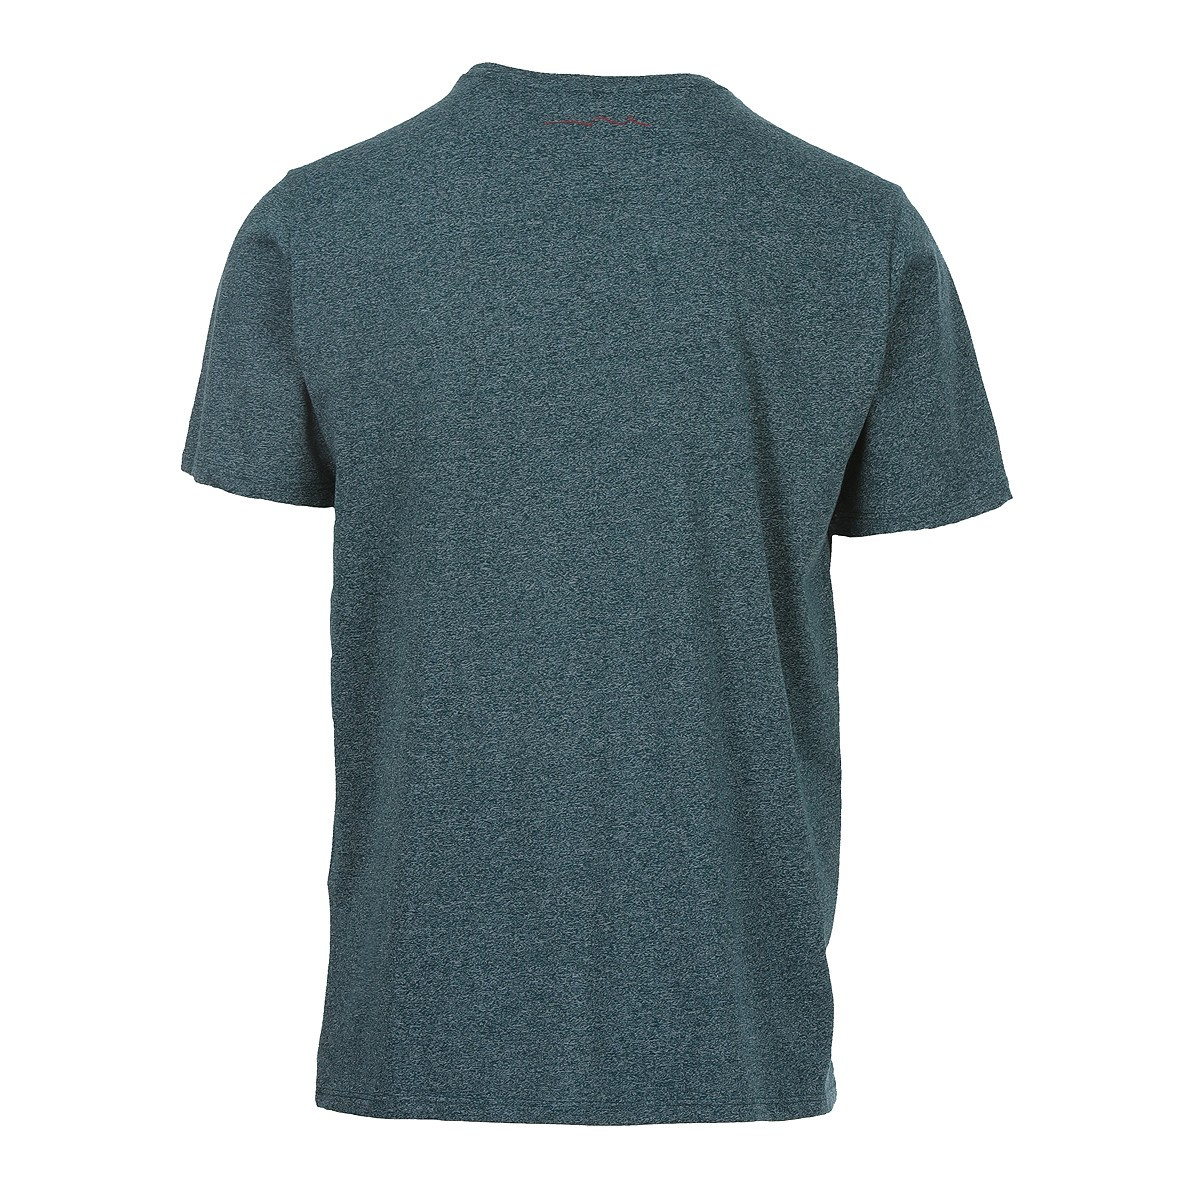 T-shirt manches courtes homme vert TEDDY SMITH